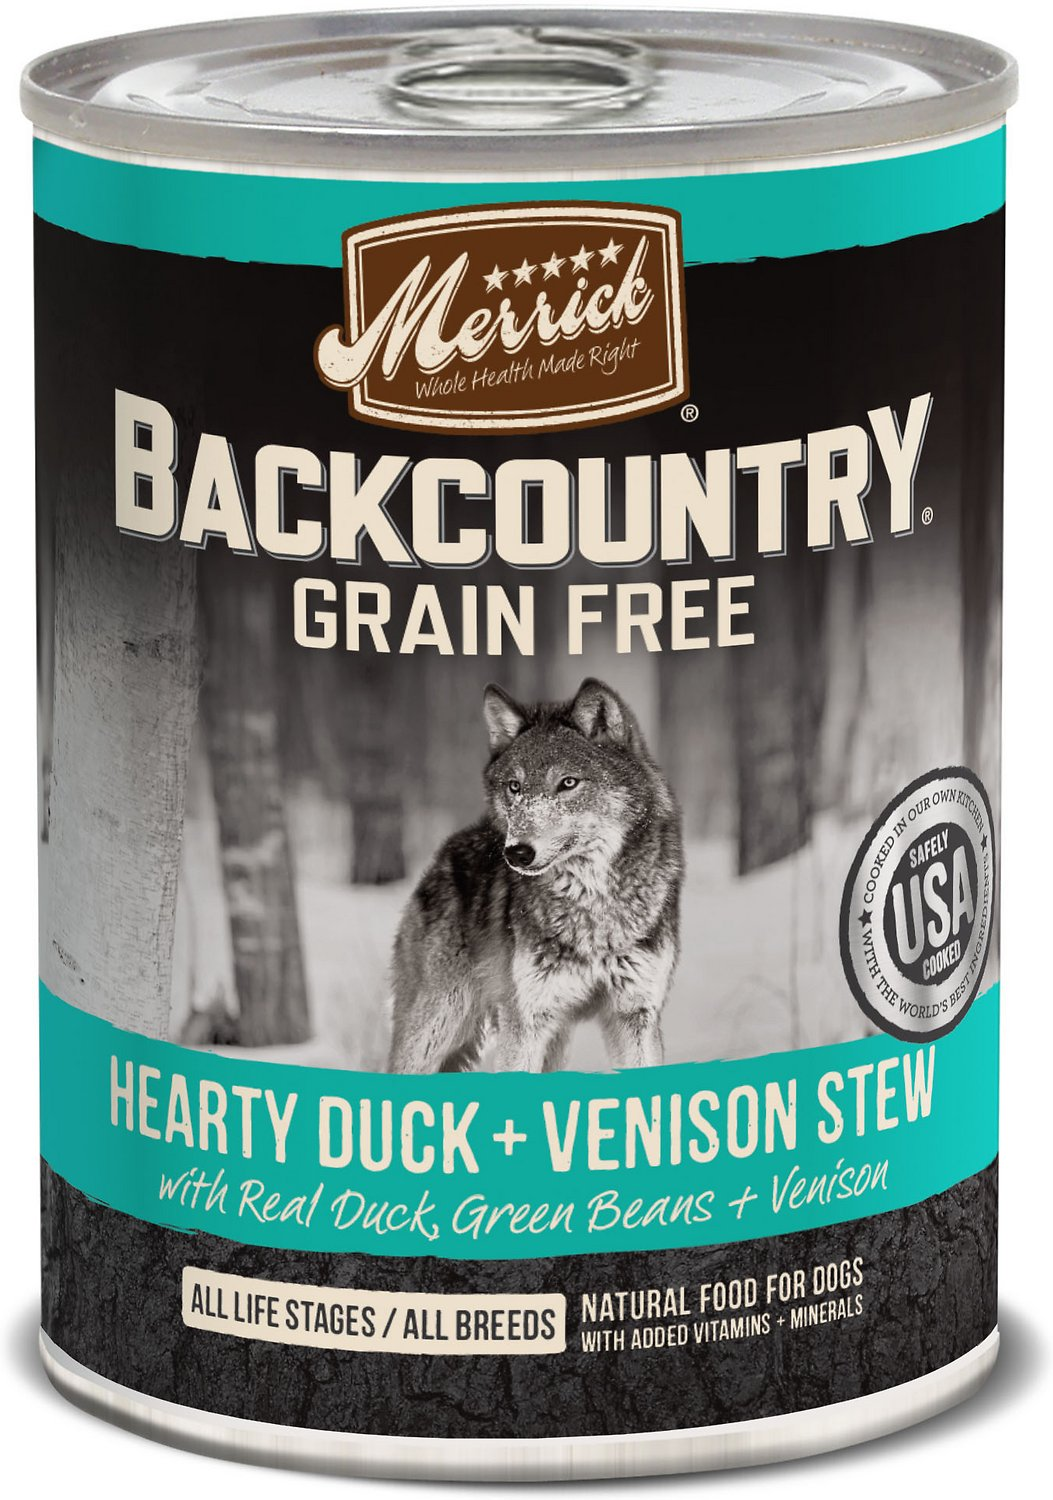 Merrick Backcountry Grain-Free Hearty Duck & Venison Stew Canned Dog Food, 12.7-oz, case of 12